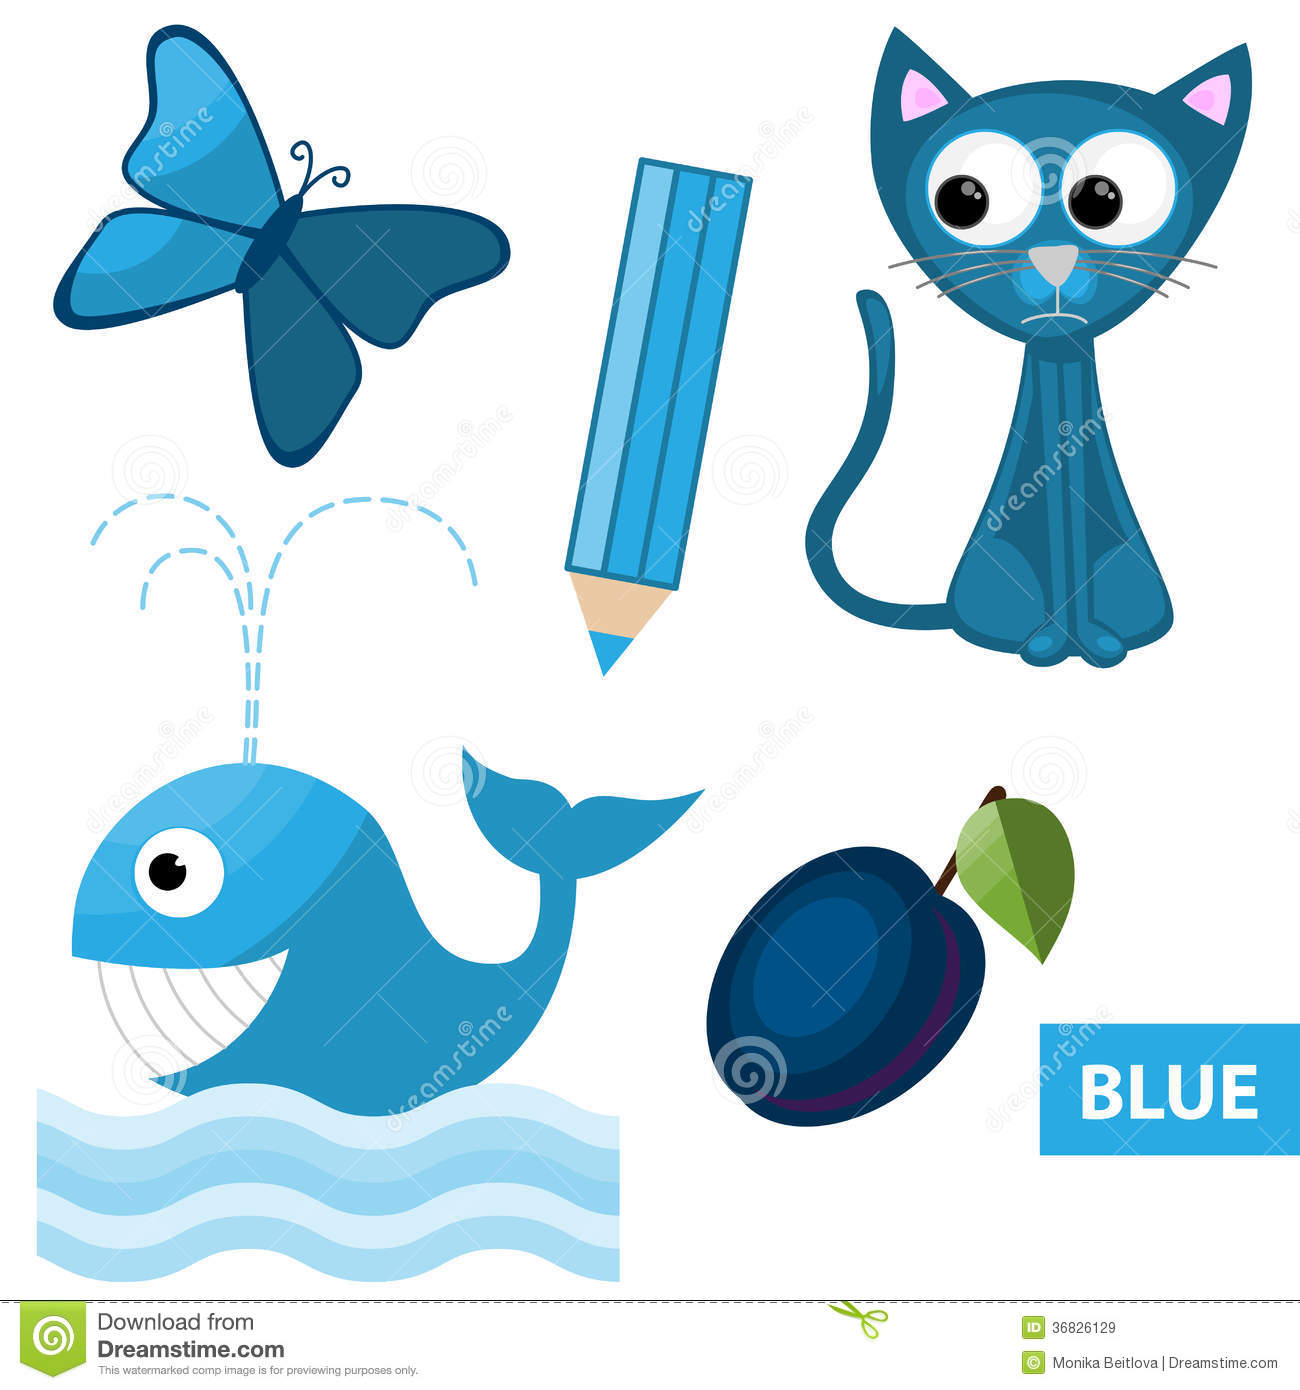 Things that color blue